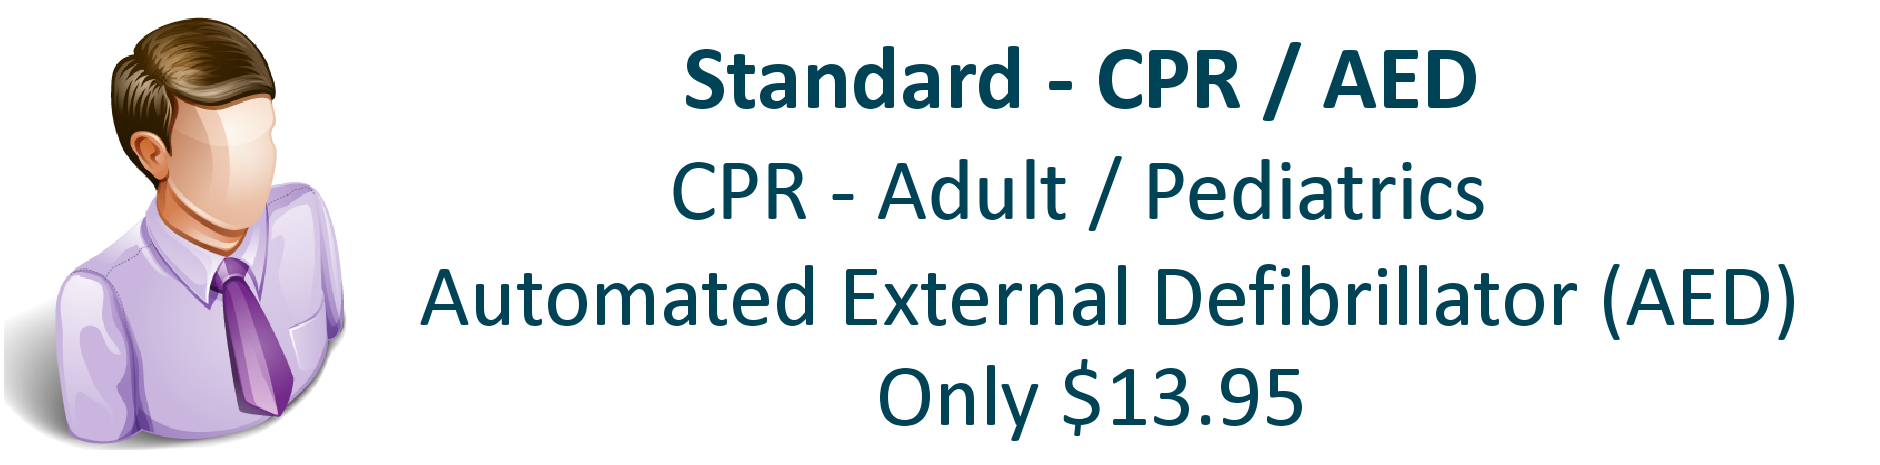 Online cpr aed first aid certification cpr certification cpr certification cpr recertification cpr online online cpr bls online basic xflitez Images